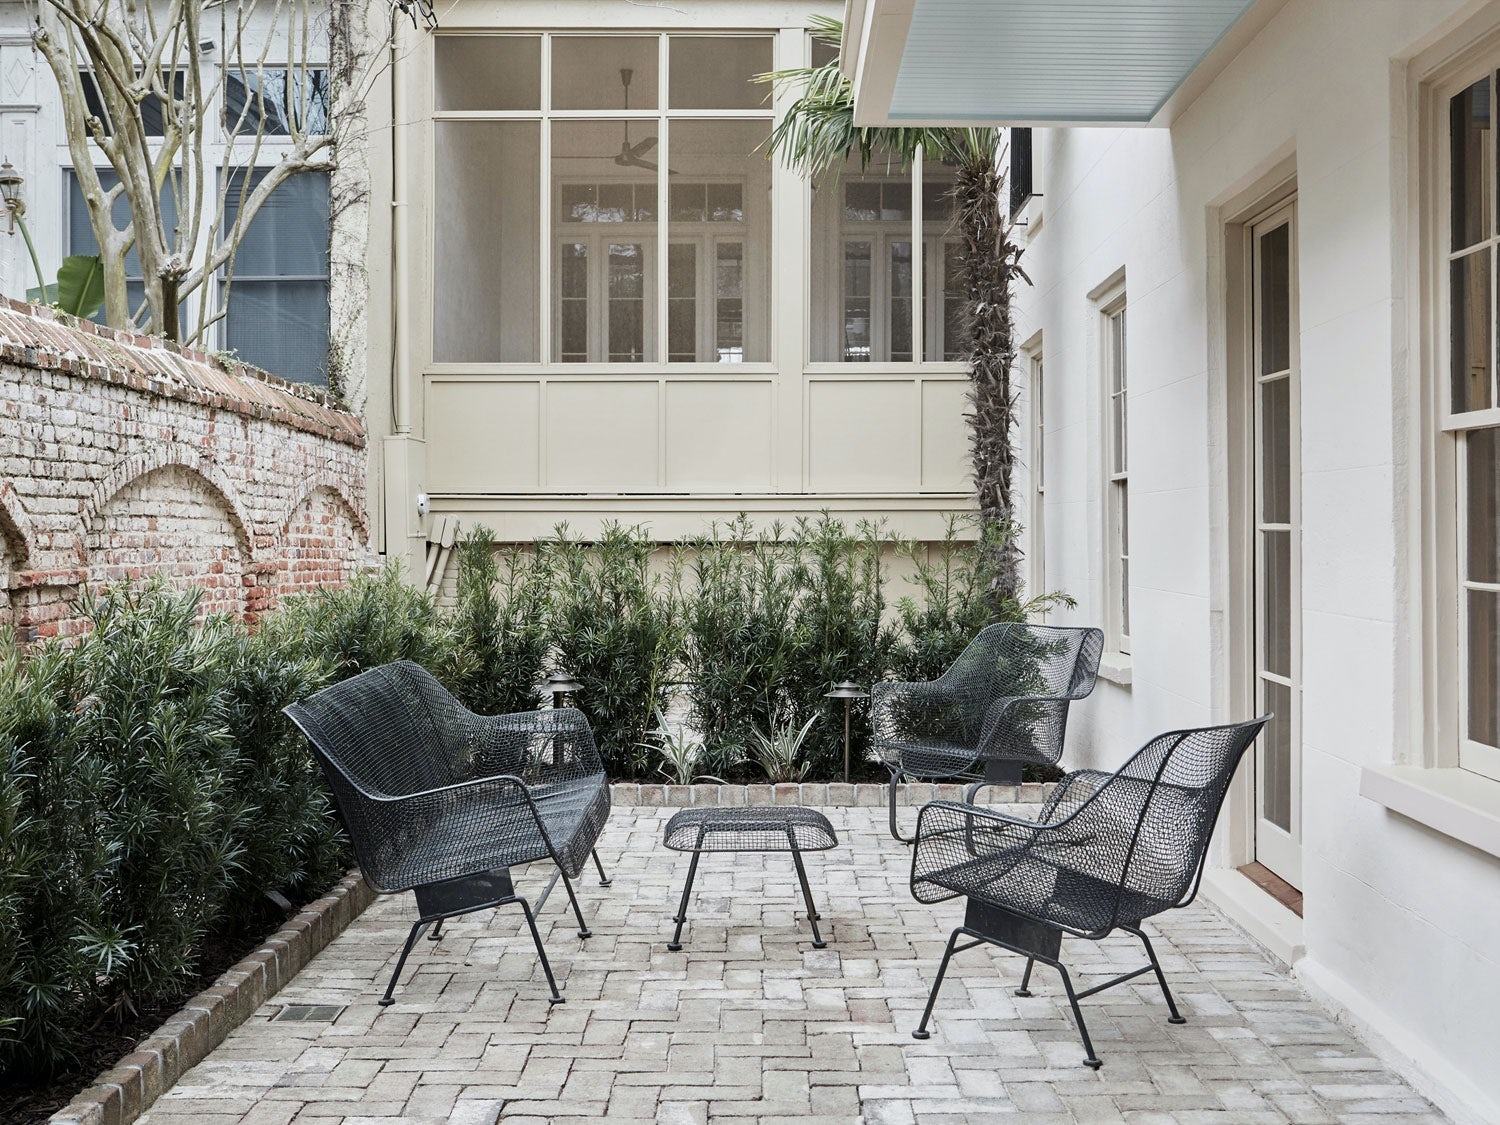 gallery image for Charleston Carriage House